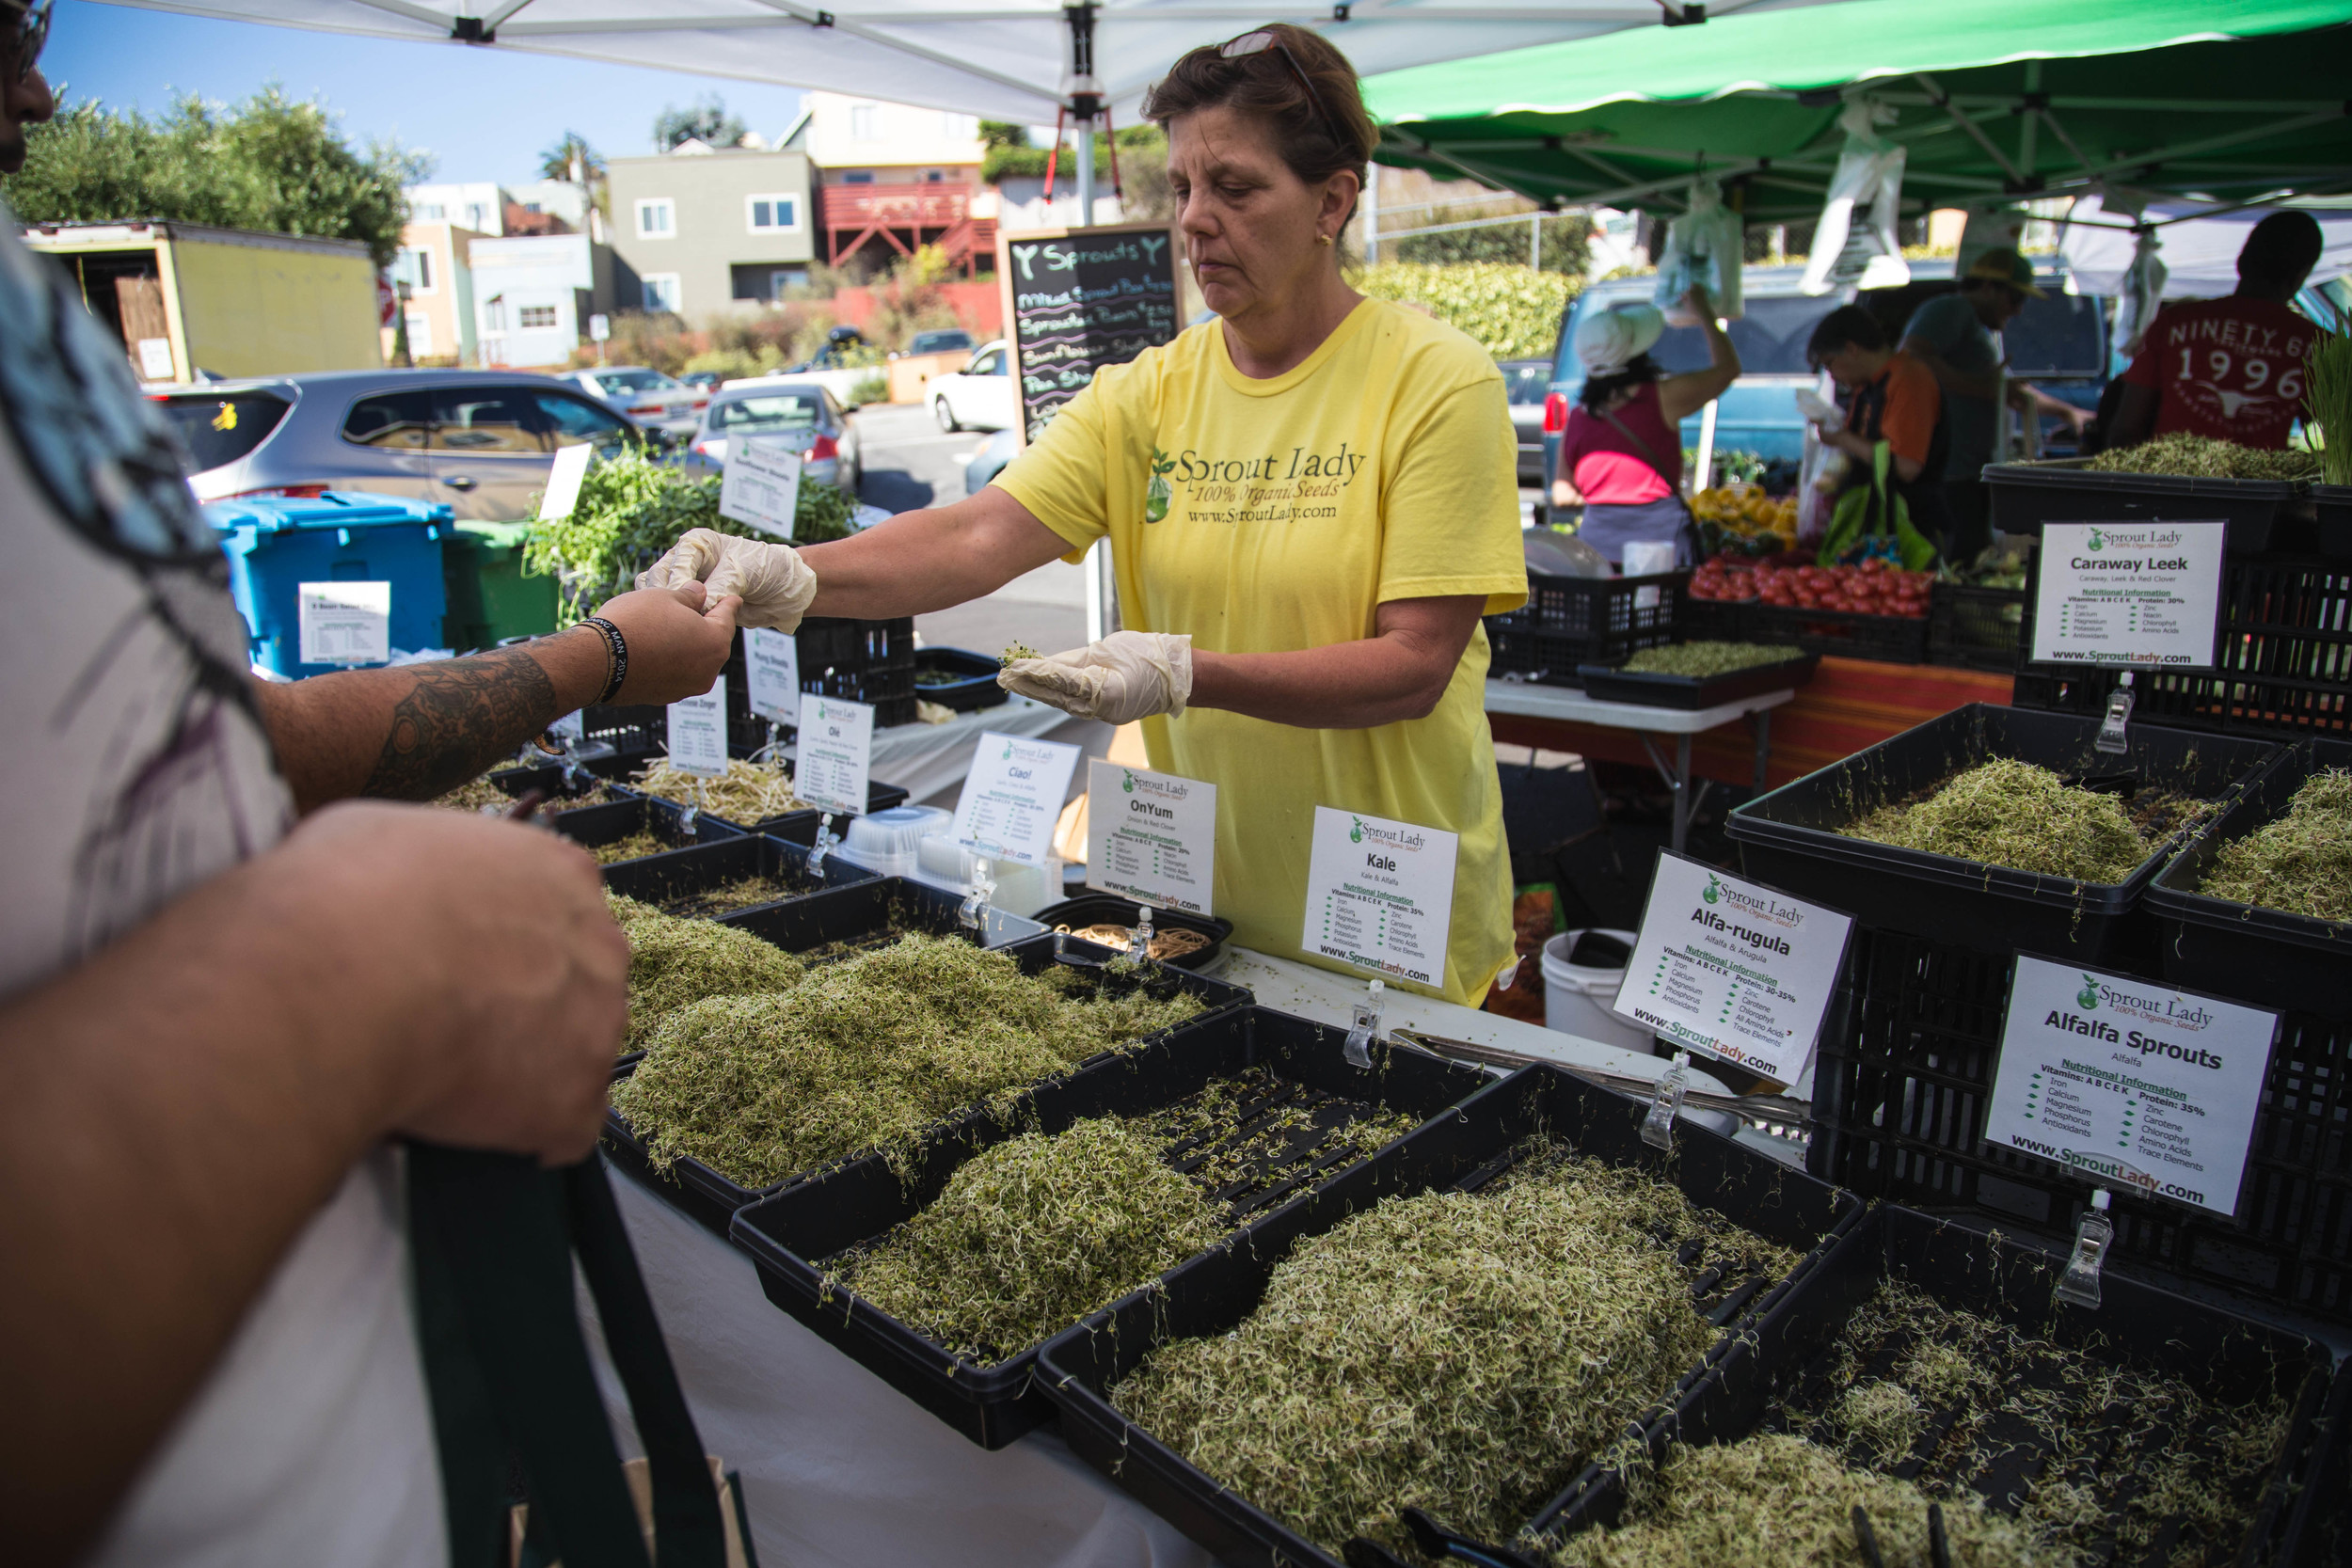 Held on Saturday mornings, the historic Alemany Farmers Market has operated in its current location since 1947.